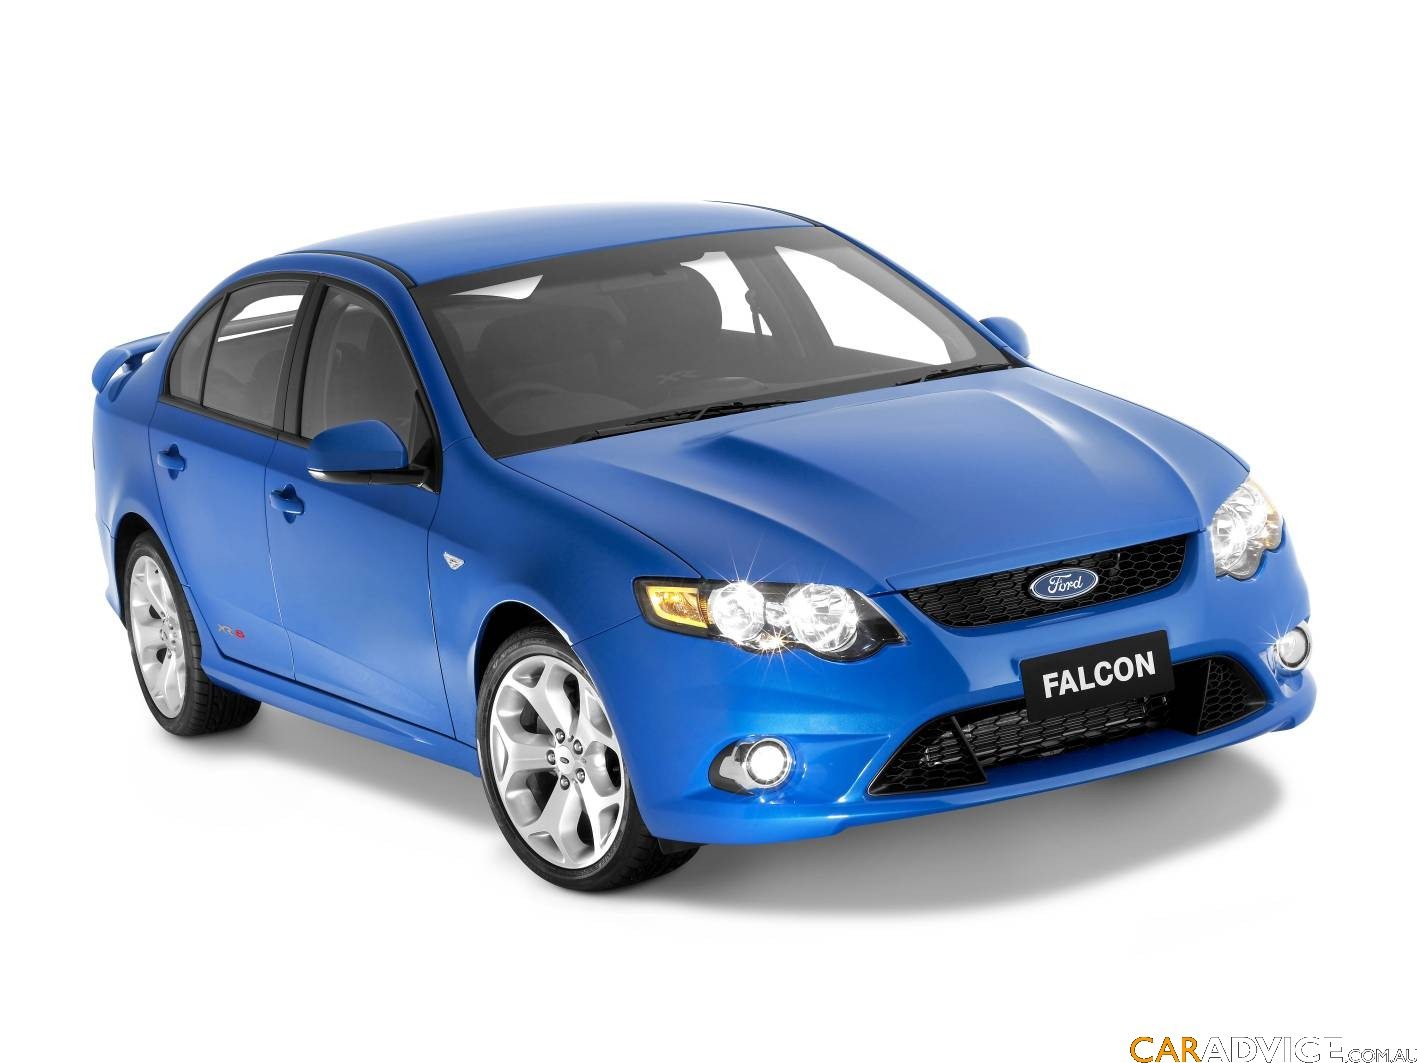 Ford Falcon V8 Supercar Set To Roll